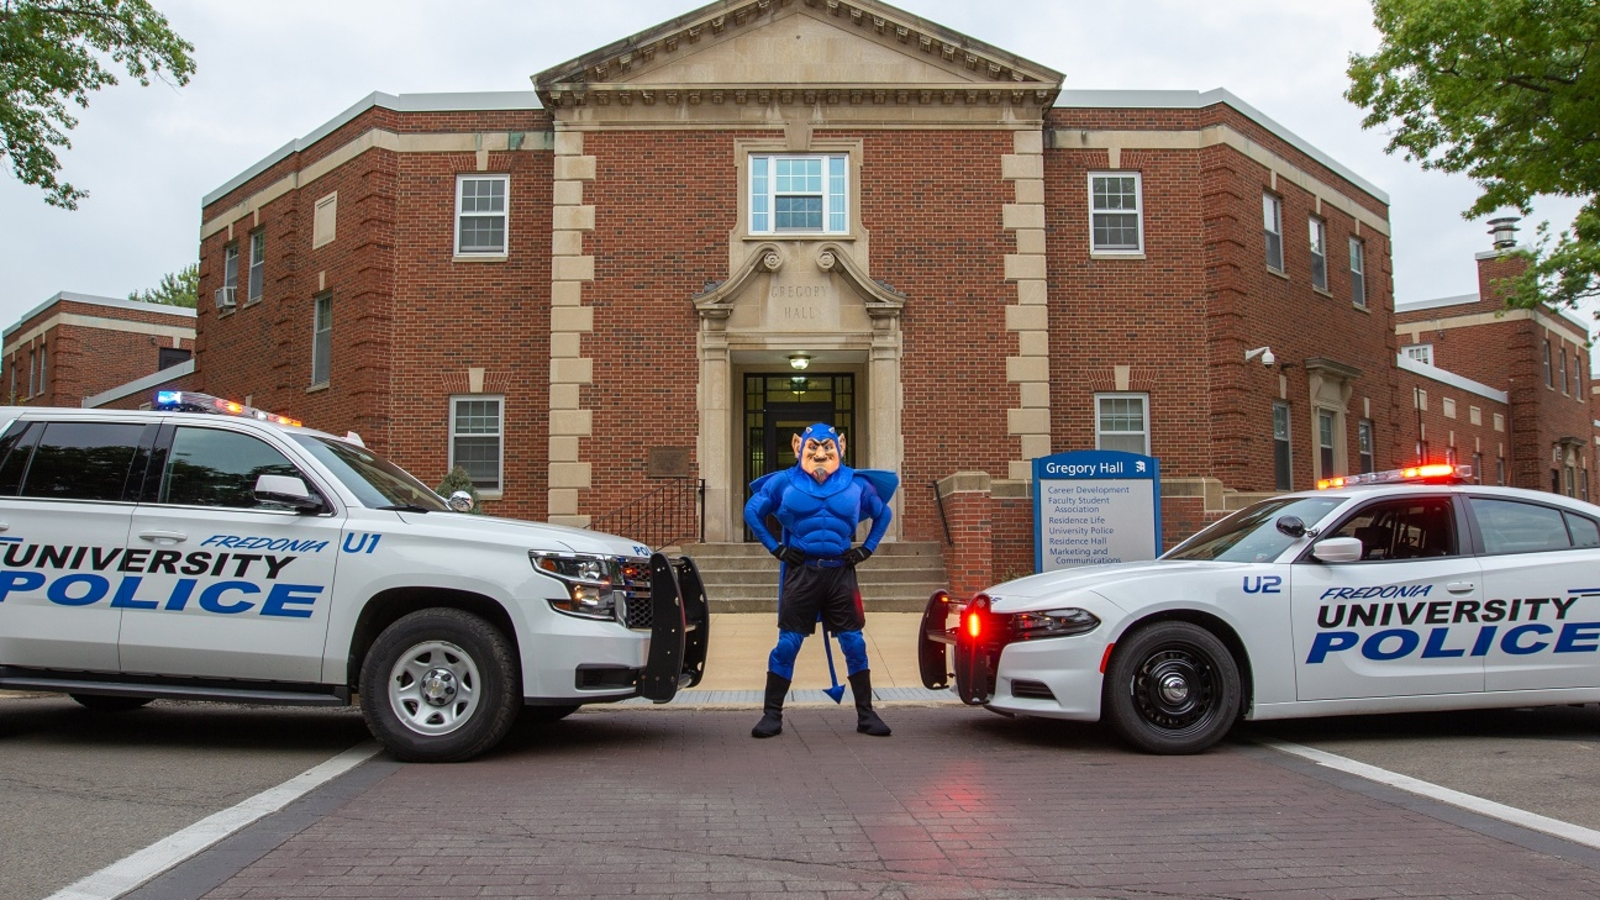 Police cars and Freddy